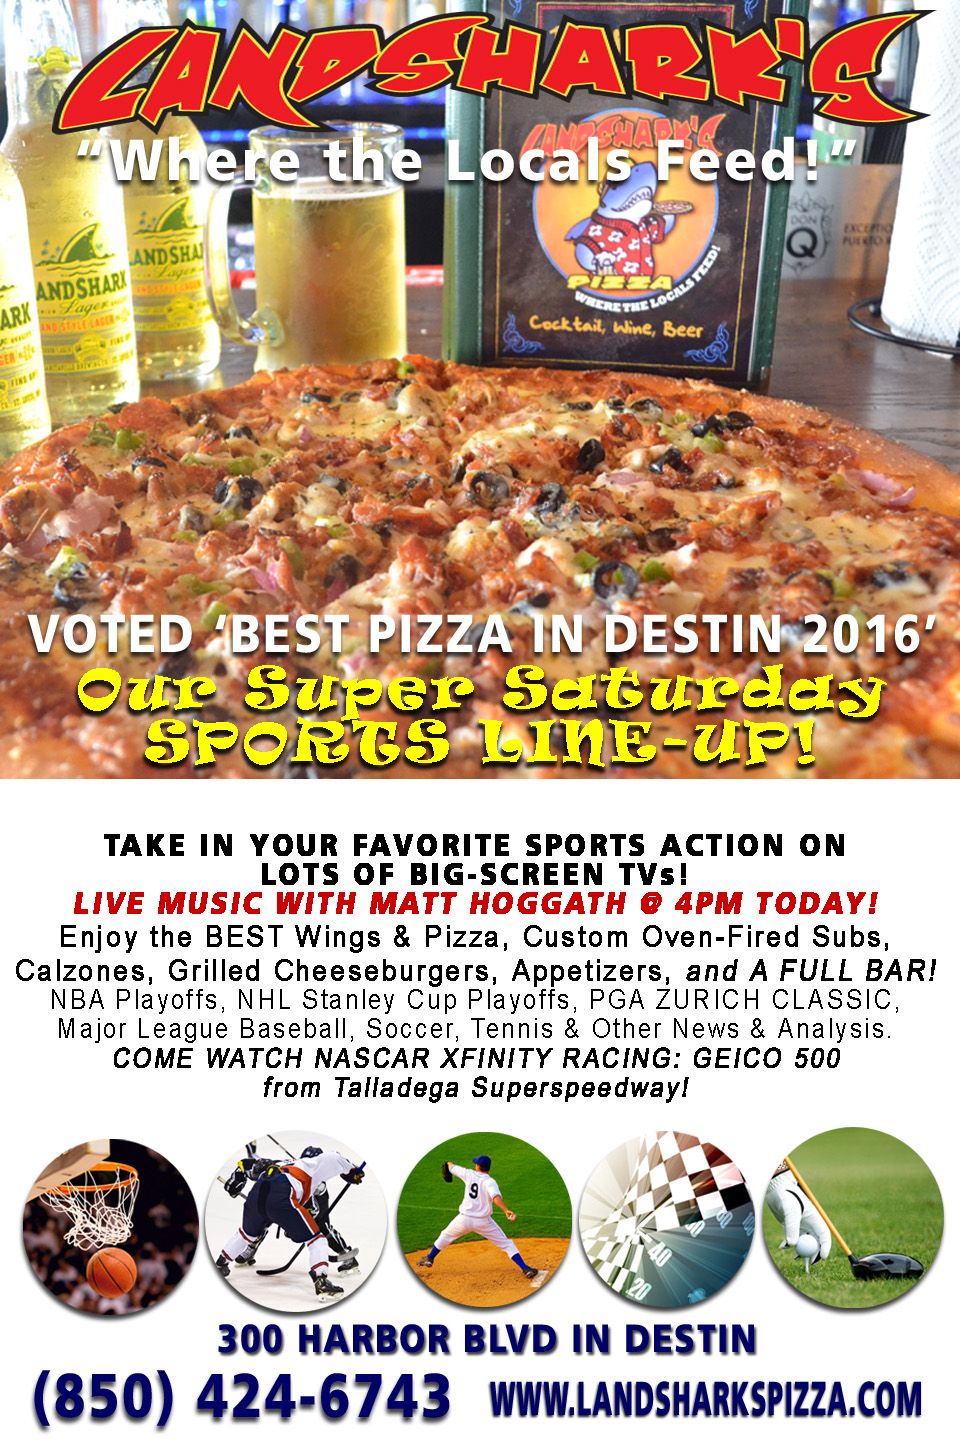 Destin FL LIVE MUSIC, plus SPORTS, The BEST PIZZA, WINGS, & MORE TODAY at Landshark's!